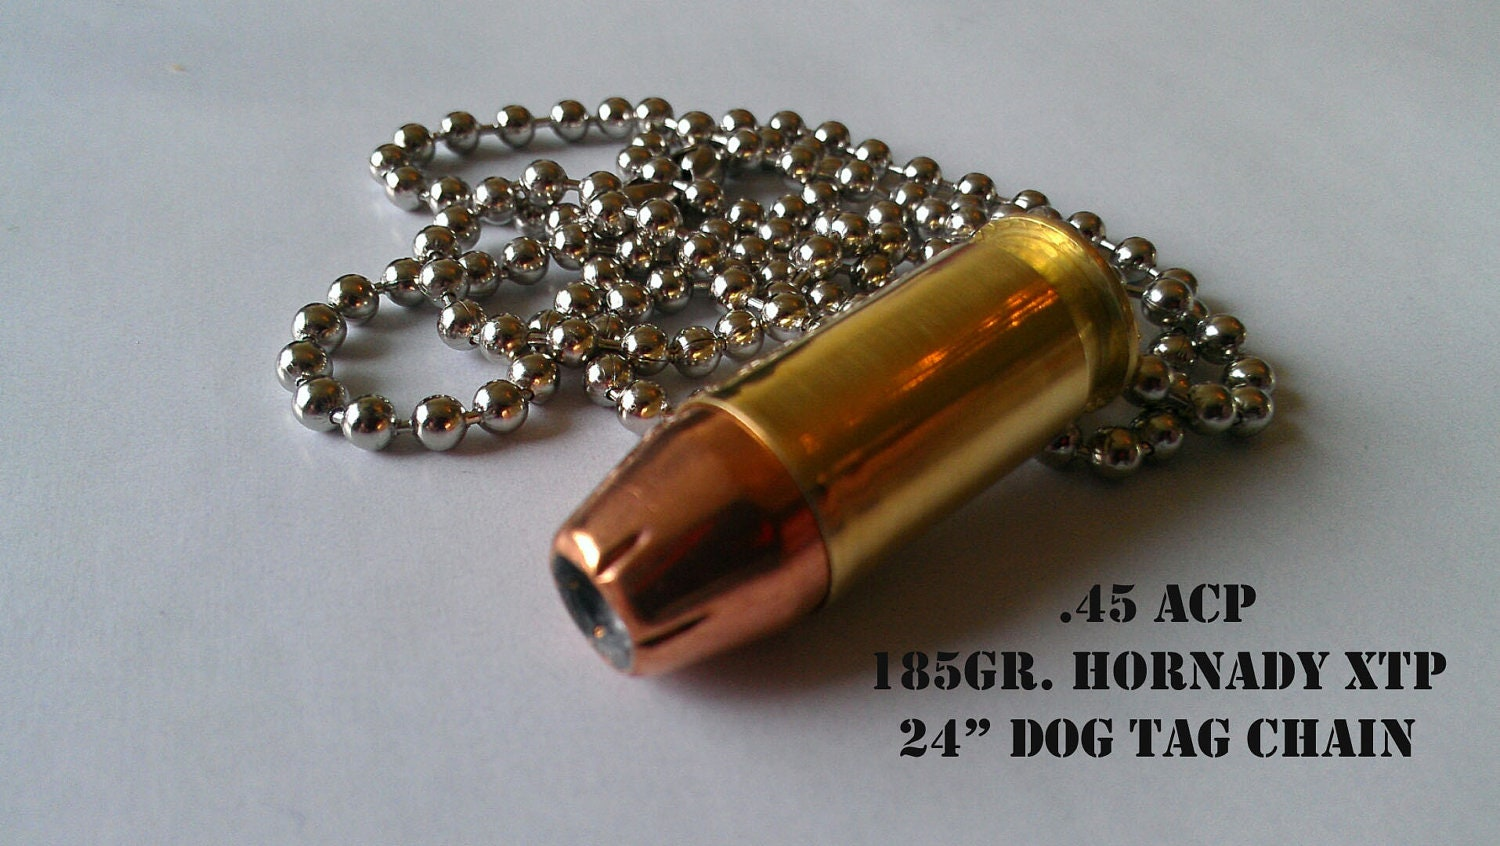 Replica .20 ACP Bullet Pendant Necklace With 20 Gr Hornady   Etsy